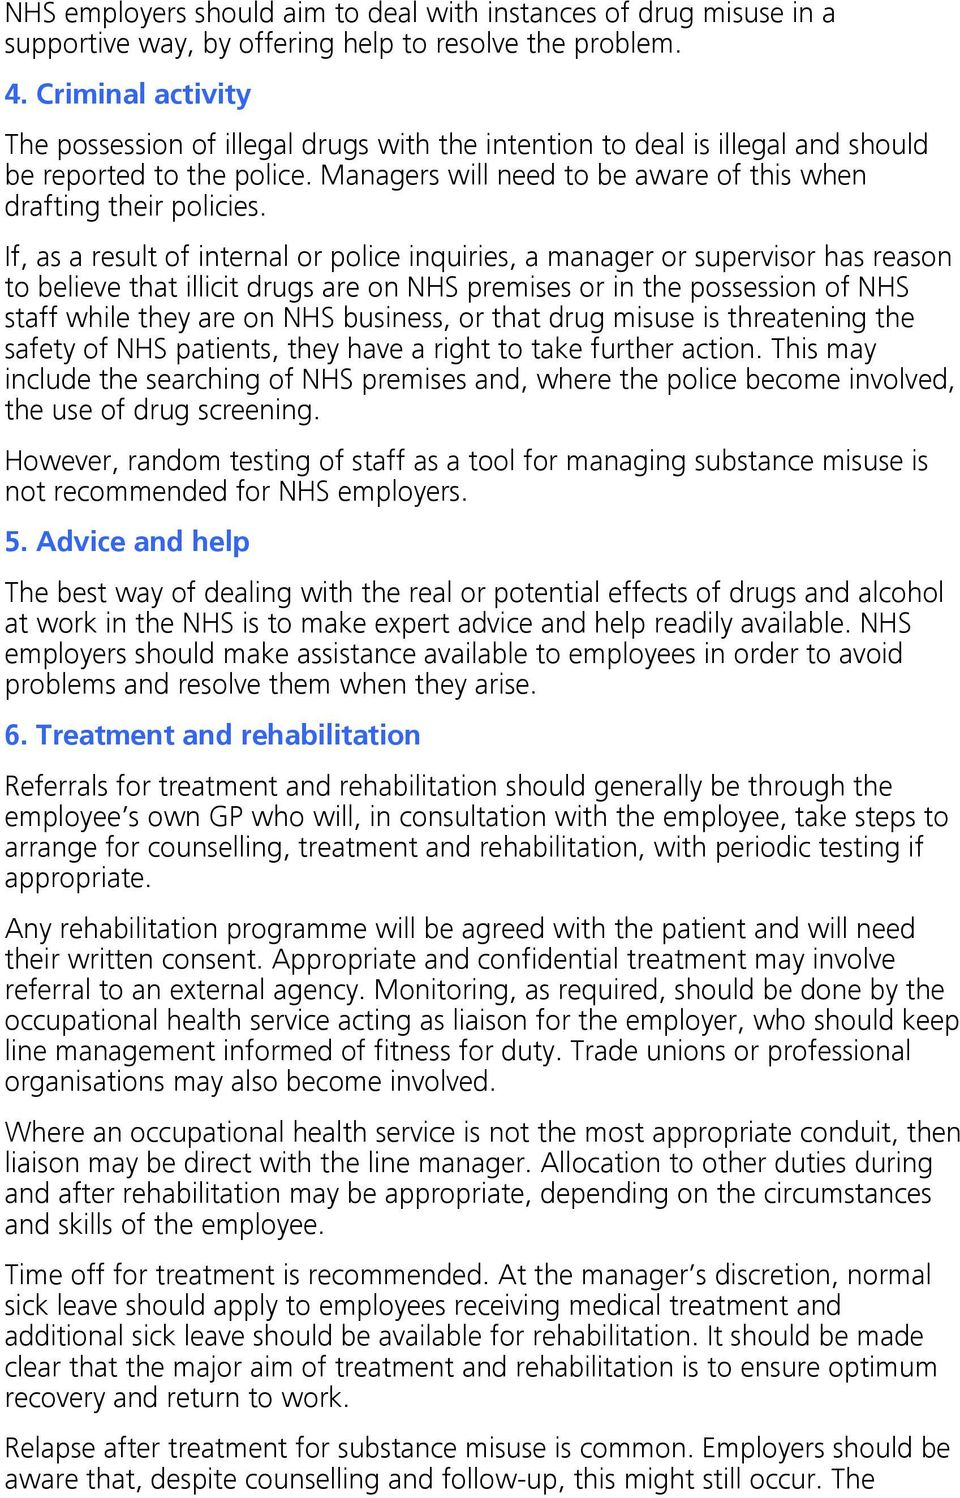 If, as a result of internal or police inquiries, a manager or supervisor has reason to believe that illicit drugs are on NHS premises or in the possession of NHS staff while they are on NHS business,